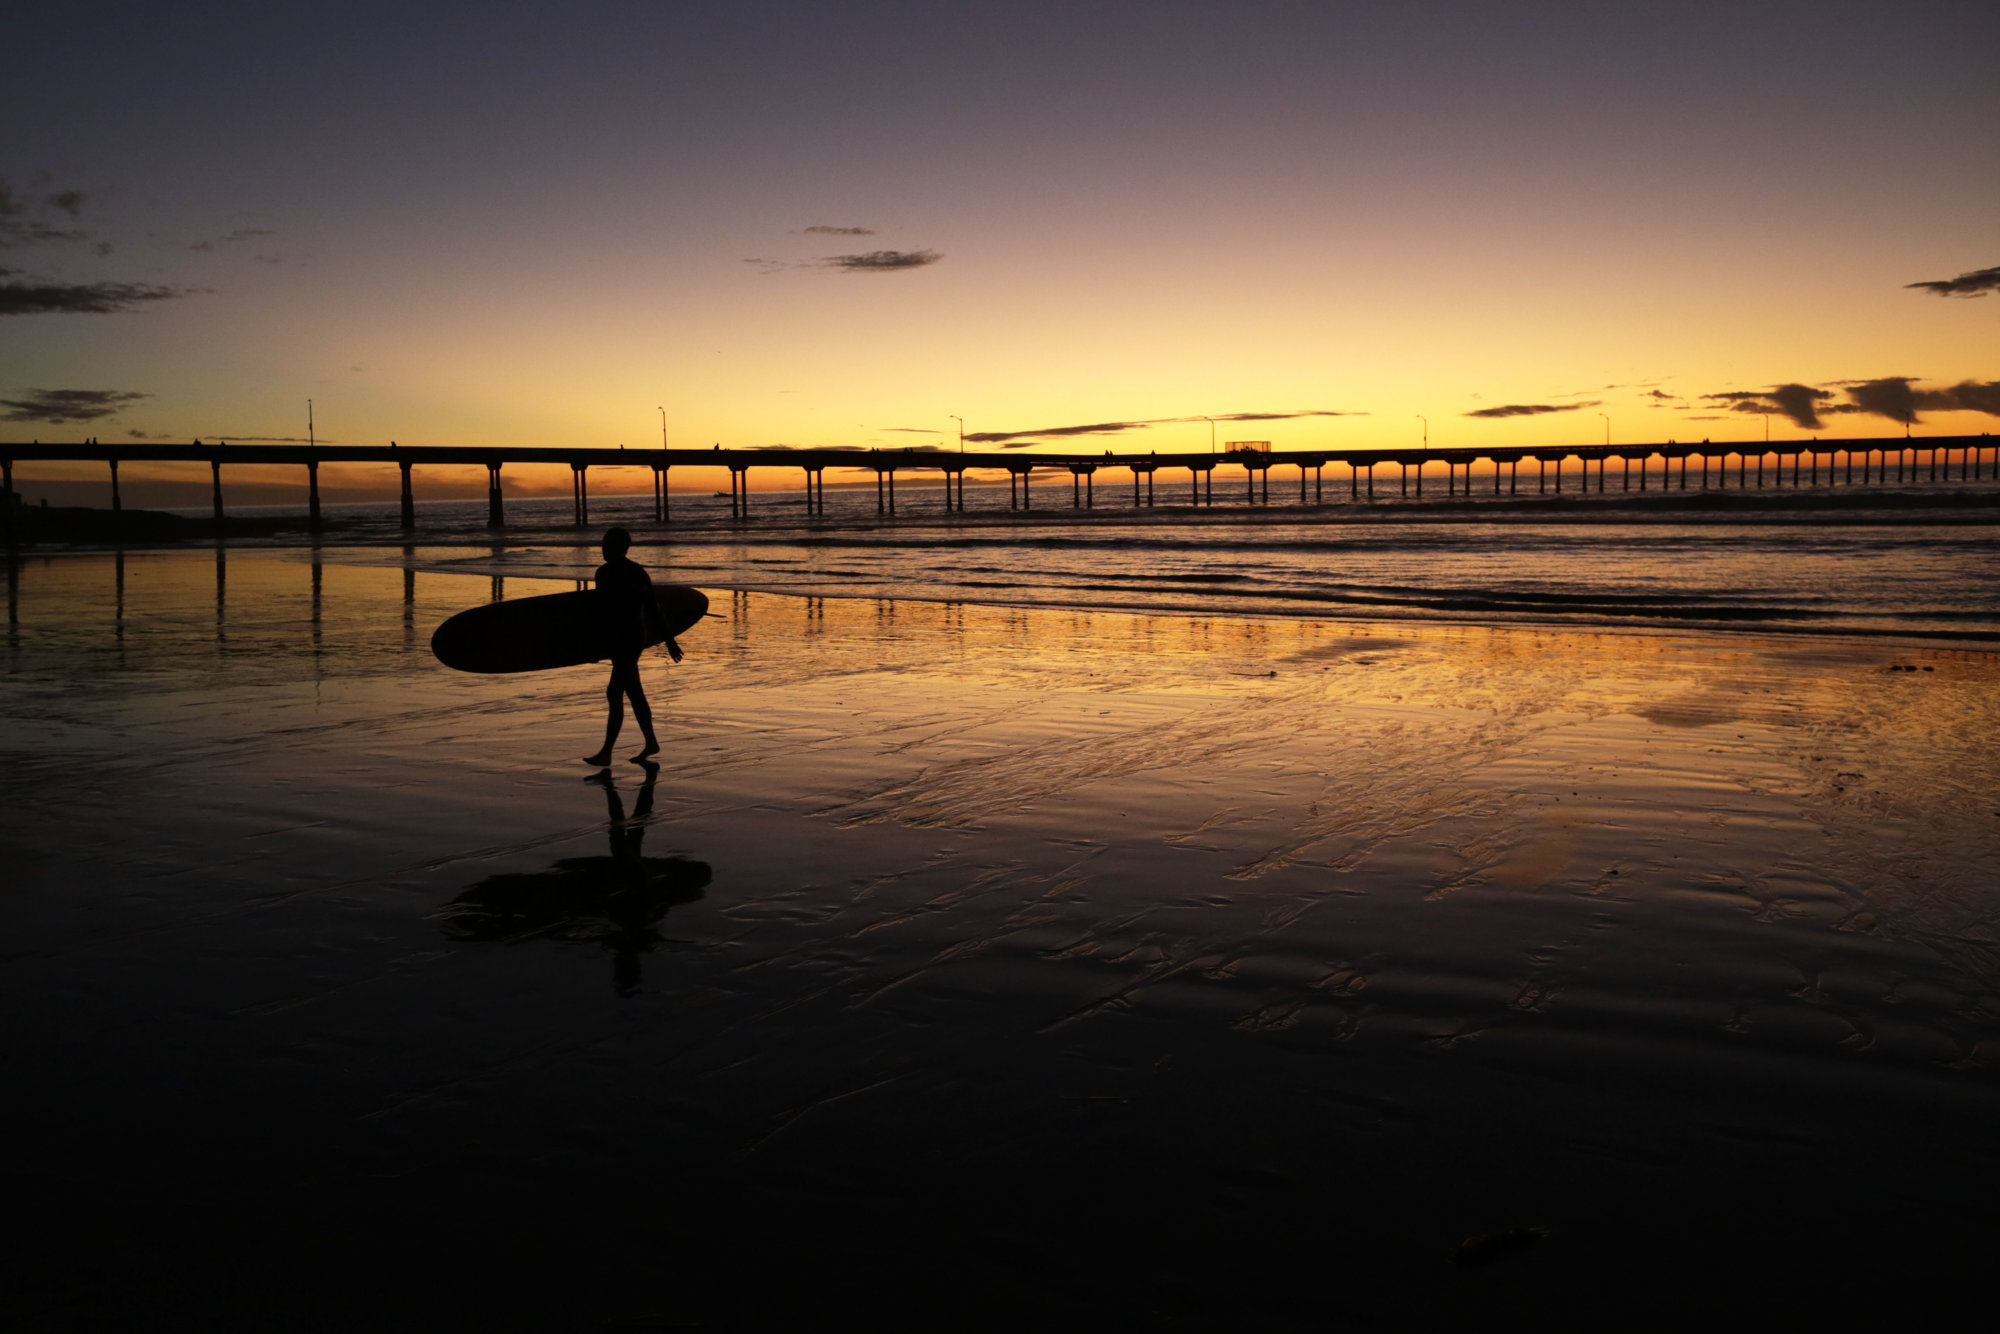 A surfer walks out of the surf as the sun sets behind Ocean Beach pier Tuesday, Nov. 7, 2017, in San Diego. (AP Photo/Gregory Bull)